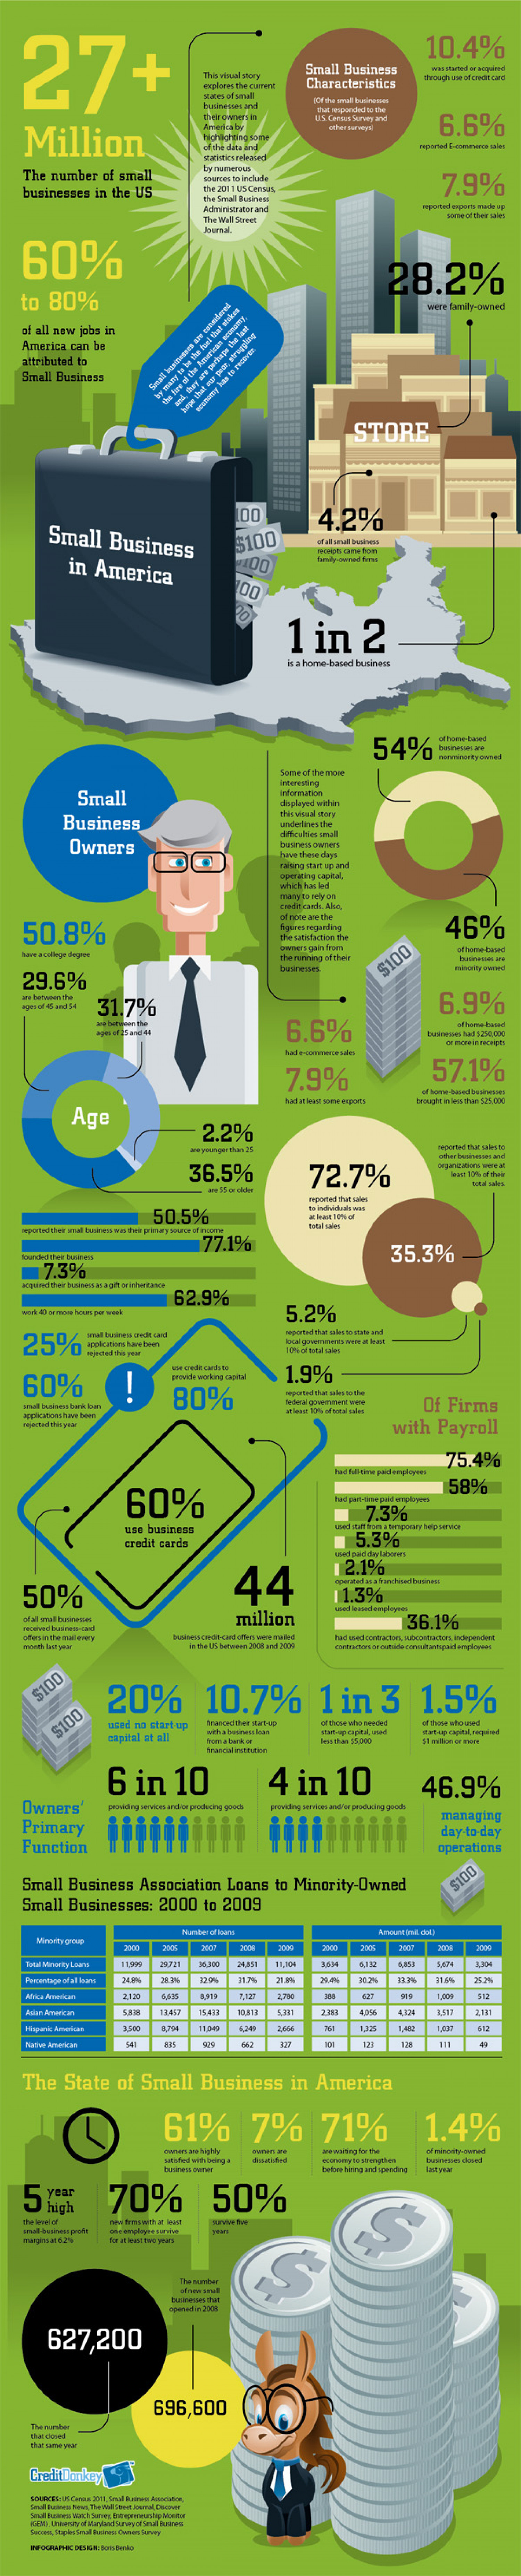 Small Business in America Infographic